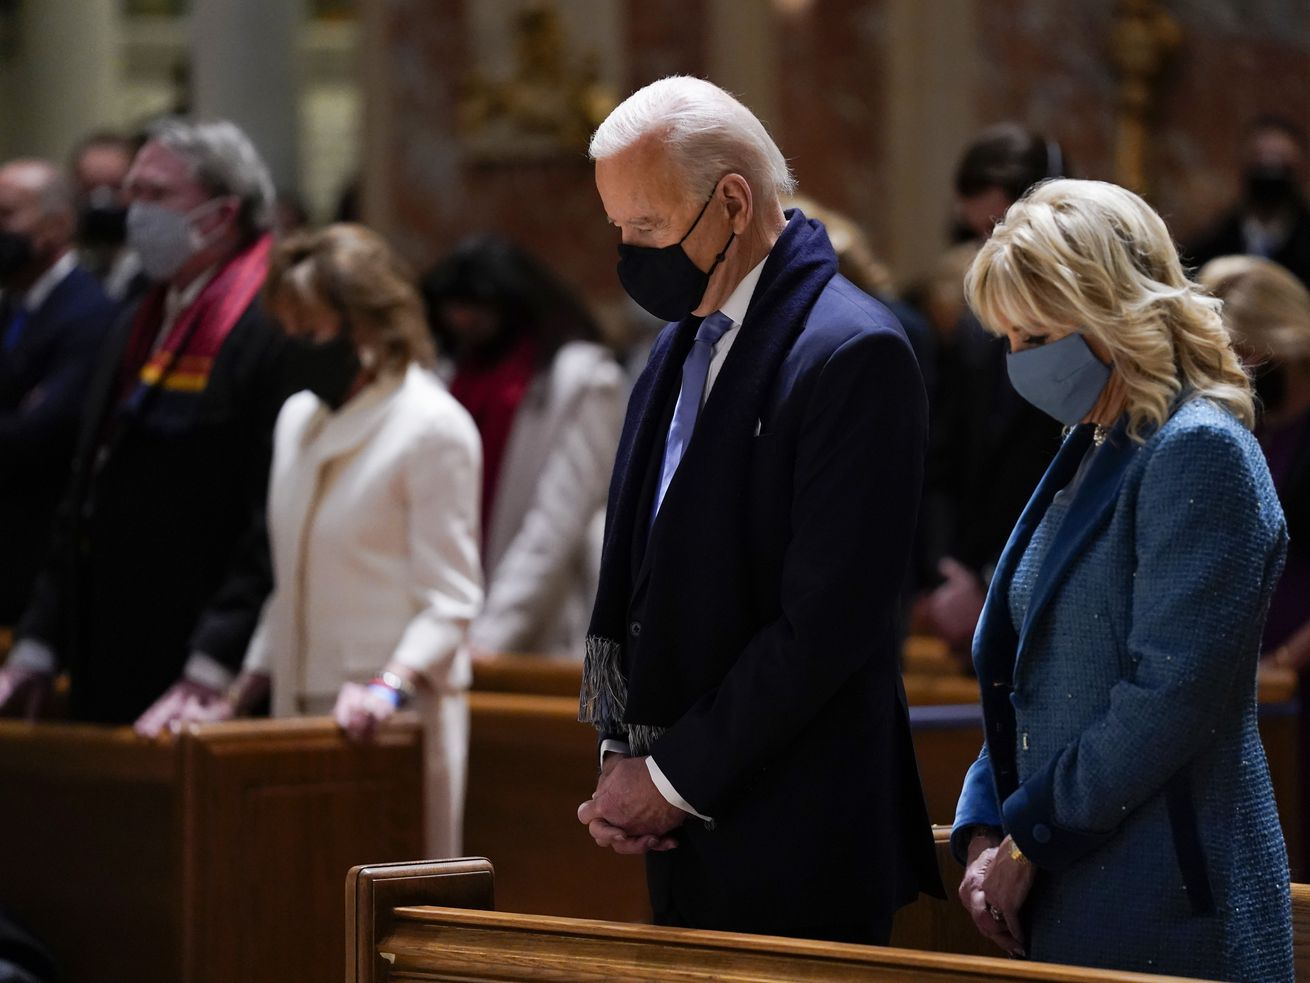 In this Wednesday, Jan. 20, 2021 file photo, President-elect Joe Biden and his wife, Jill Biden, attend Mass at the Cathedral of St. Matthew the Apostle during Inauguration Day ceremonies in Washington. When U.S. Catholic bishops hold their next national meeting in June 2021, they'll be deciding whether to send a tougher-than-ever message to President Joe Biden and other Catholic politicians: Don't partake of Communion if you persist in public advocacy of abortion rights.